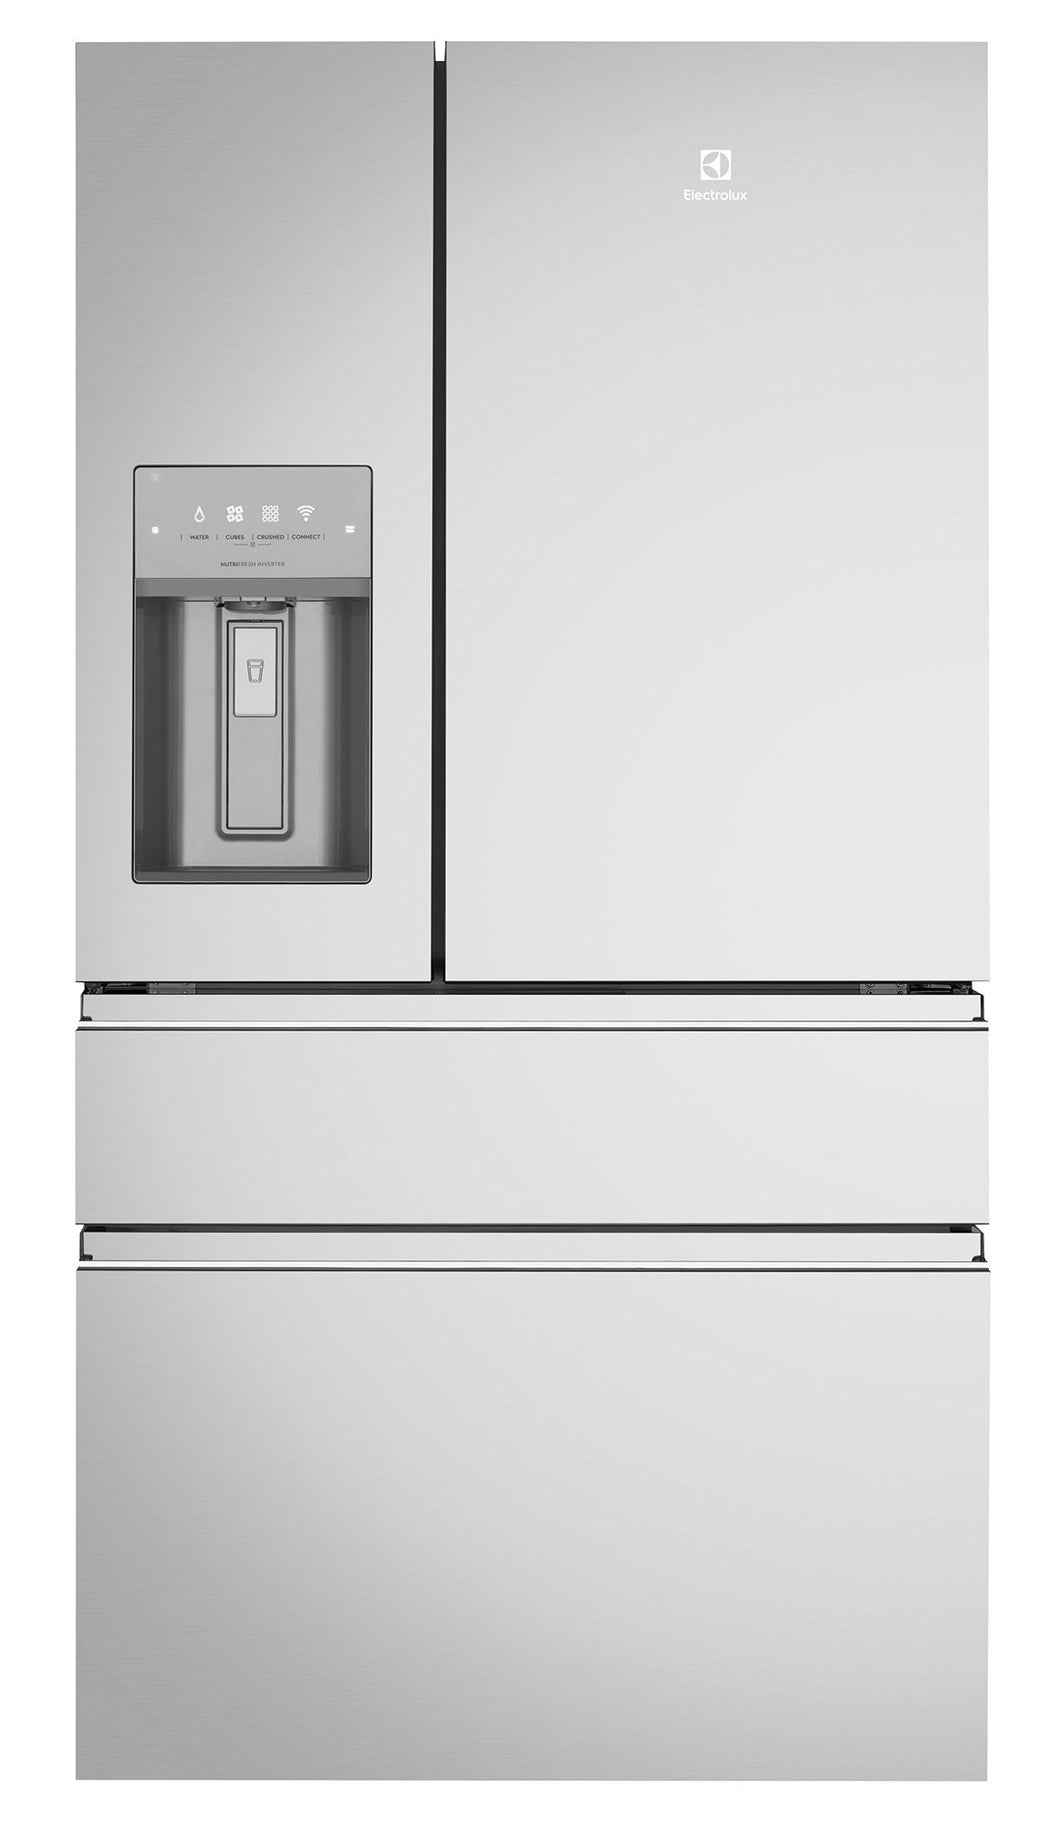 Electrolux 680 L French Door Fridge - Brisbane Home Appliances